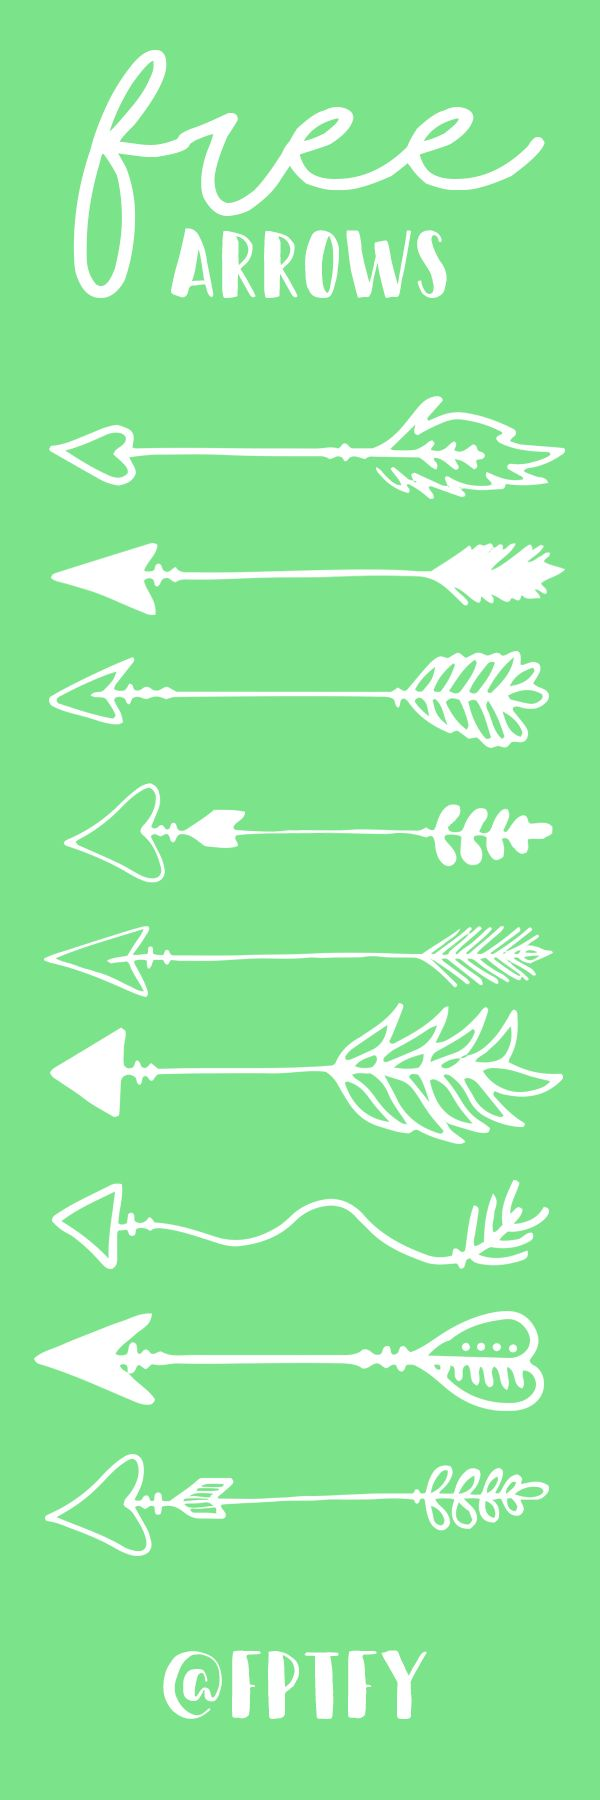 Hand Drawn Arrows: Today's freebie is a set of 12 hand drawn arrows with lots of charm and character! These are available for personal and commercial use! To Download click the following: 1       2        3        4       5       6      ...Read More »